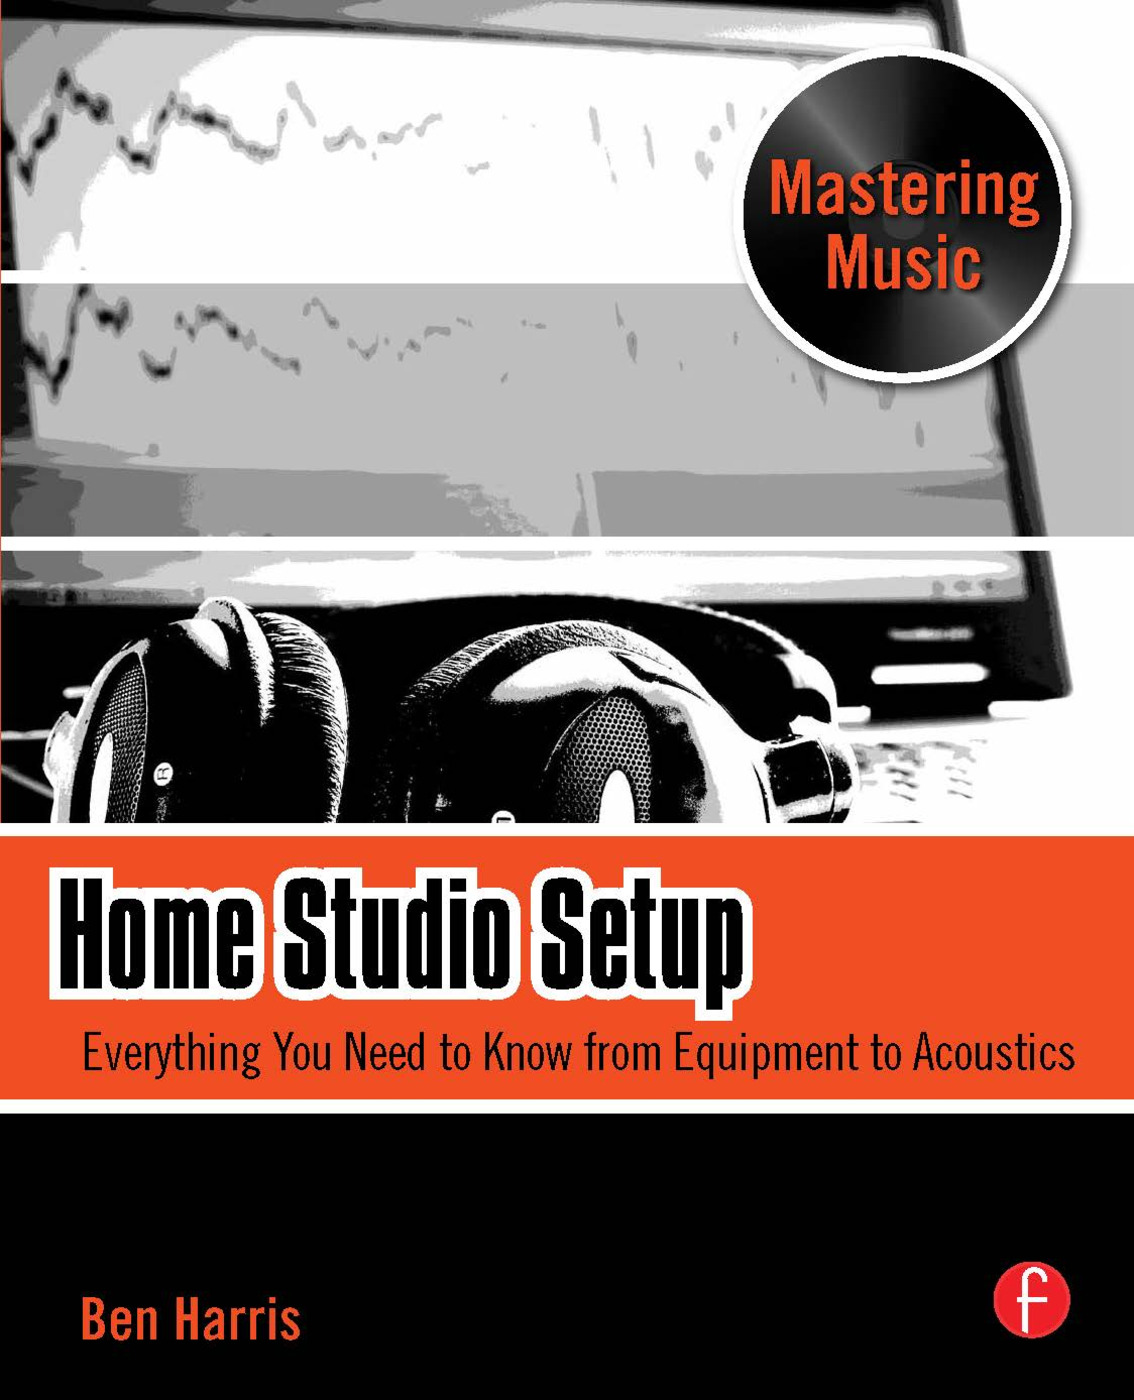 Home Studio Setup: Everything You Need to Know from Equipment to Acoustics book cover